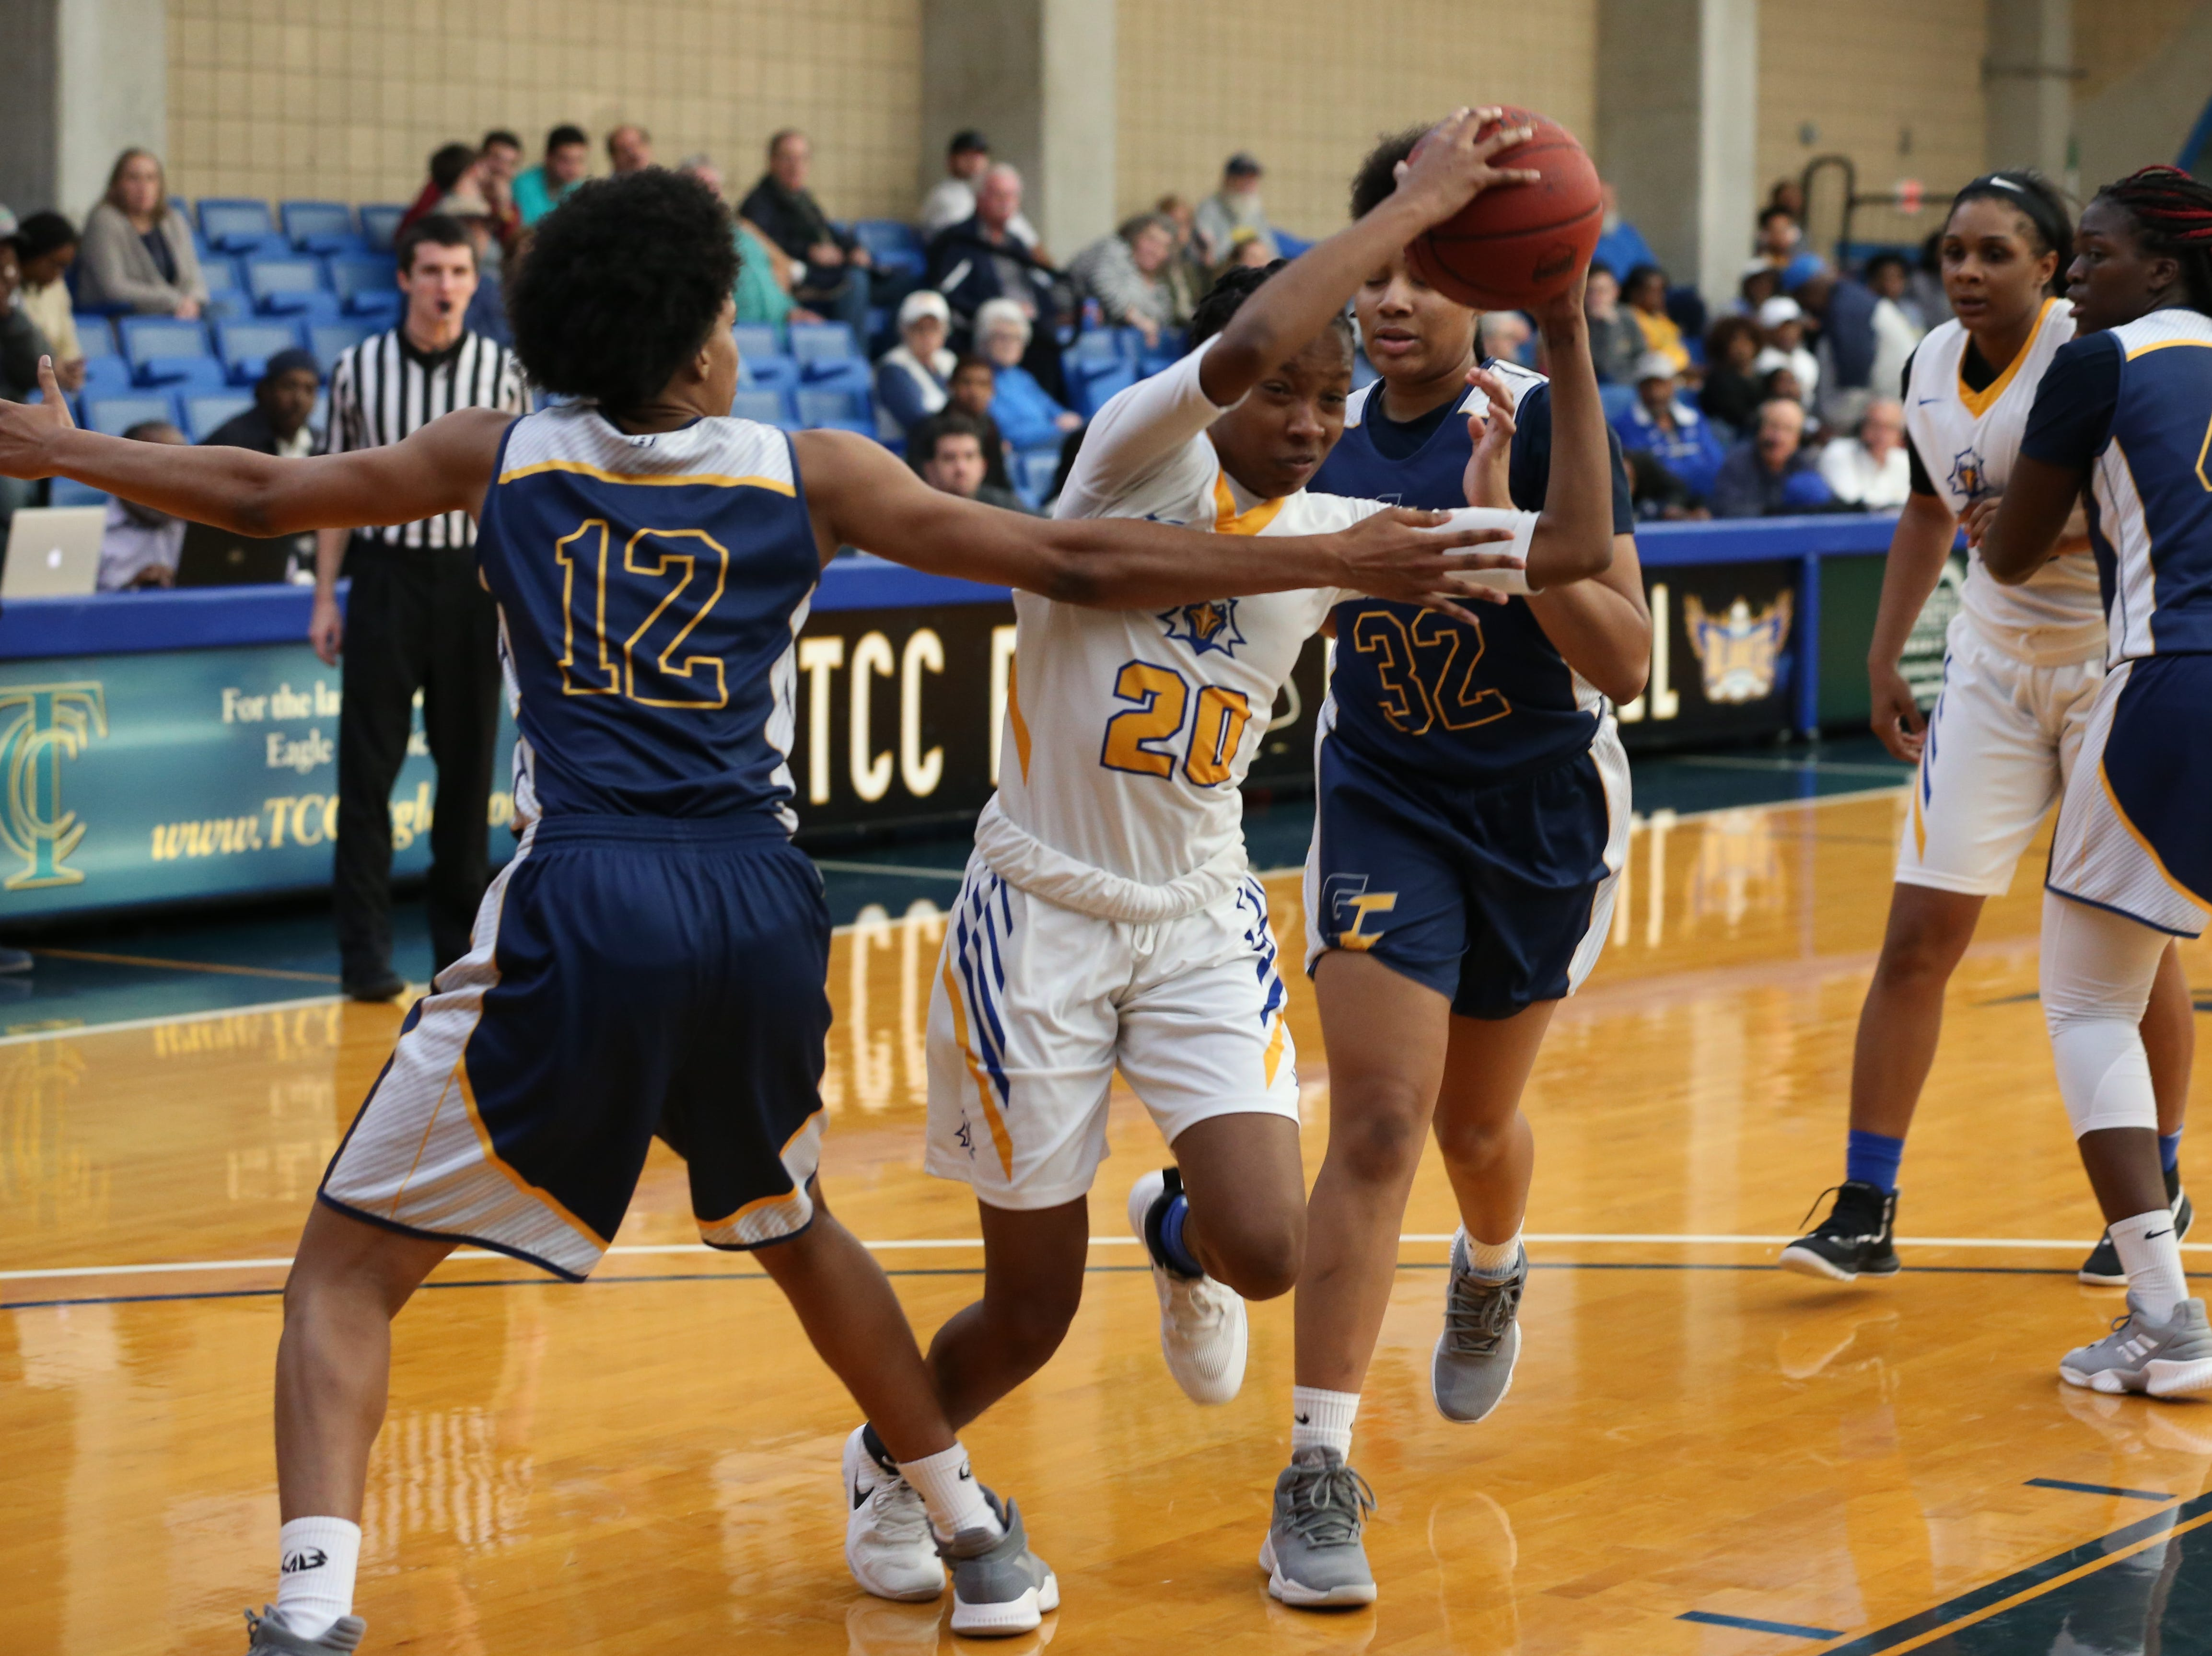 Tallahassee Community College Eagles guard Daisha Bradford (20) fights her way through her defenders towards the basket. The Tallahassee Community College Eagles host the Gulf Coast State College Commodores in a conference match-up in the Eagledome, Saturday, Jan. 5, 2019.